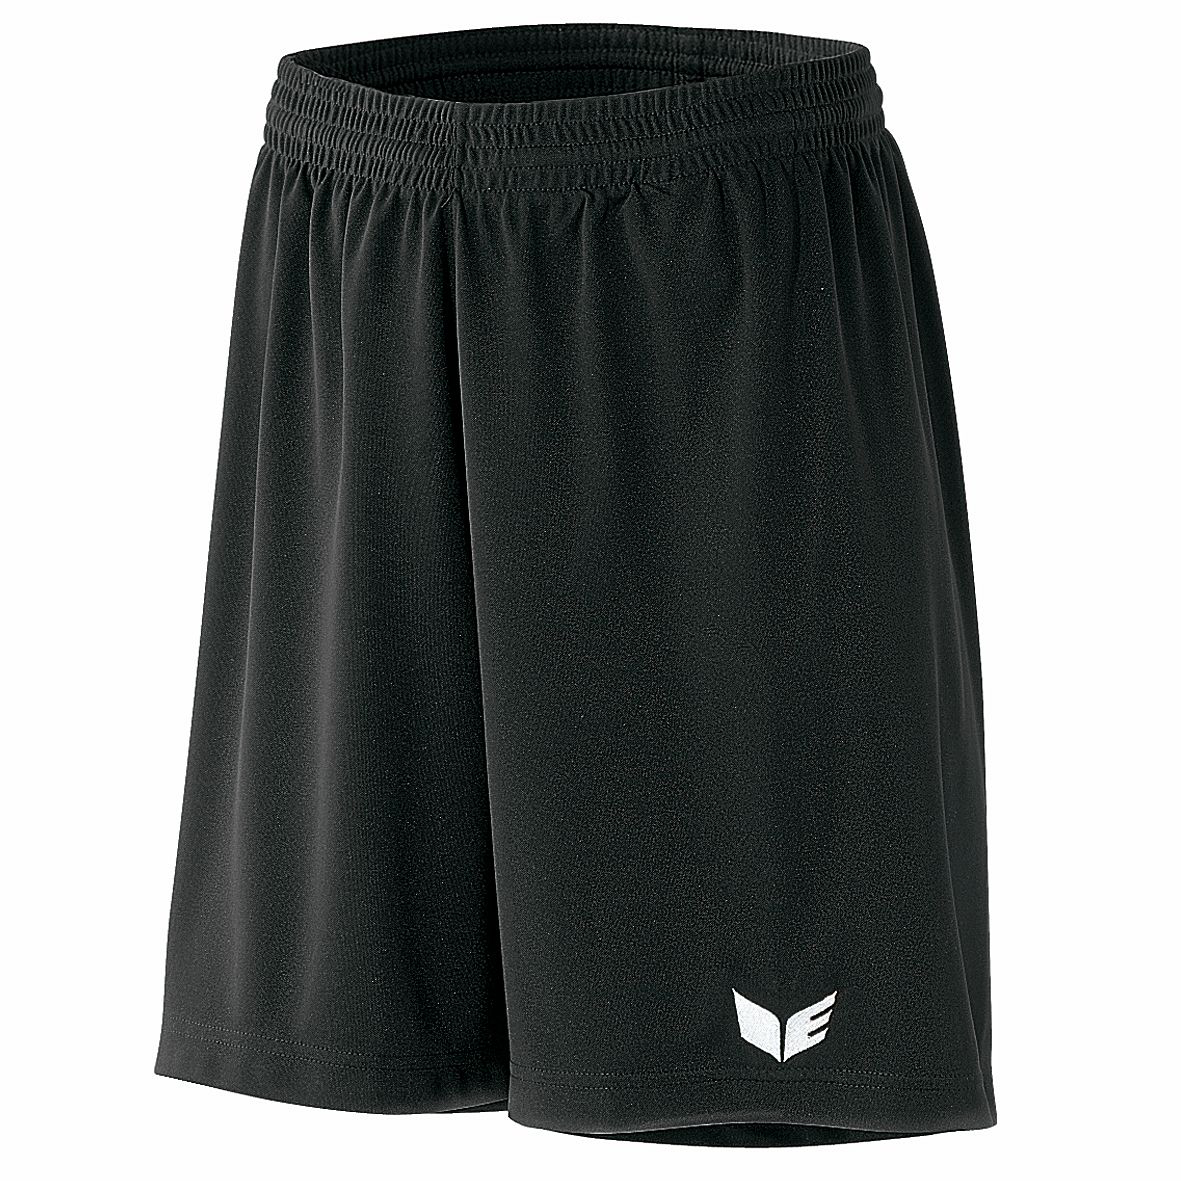 Celta Shorts, Black, 5